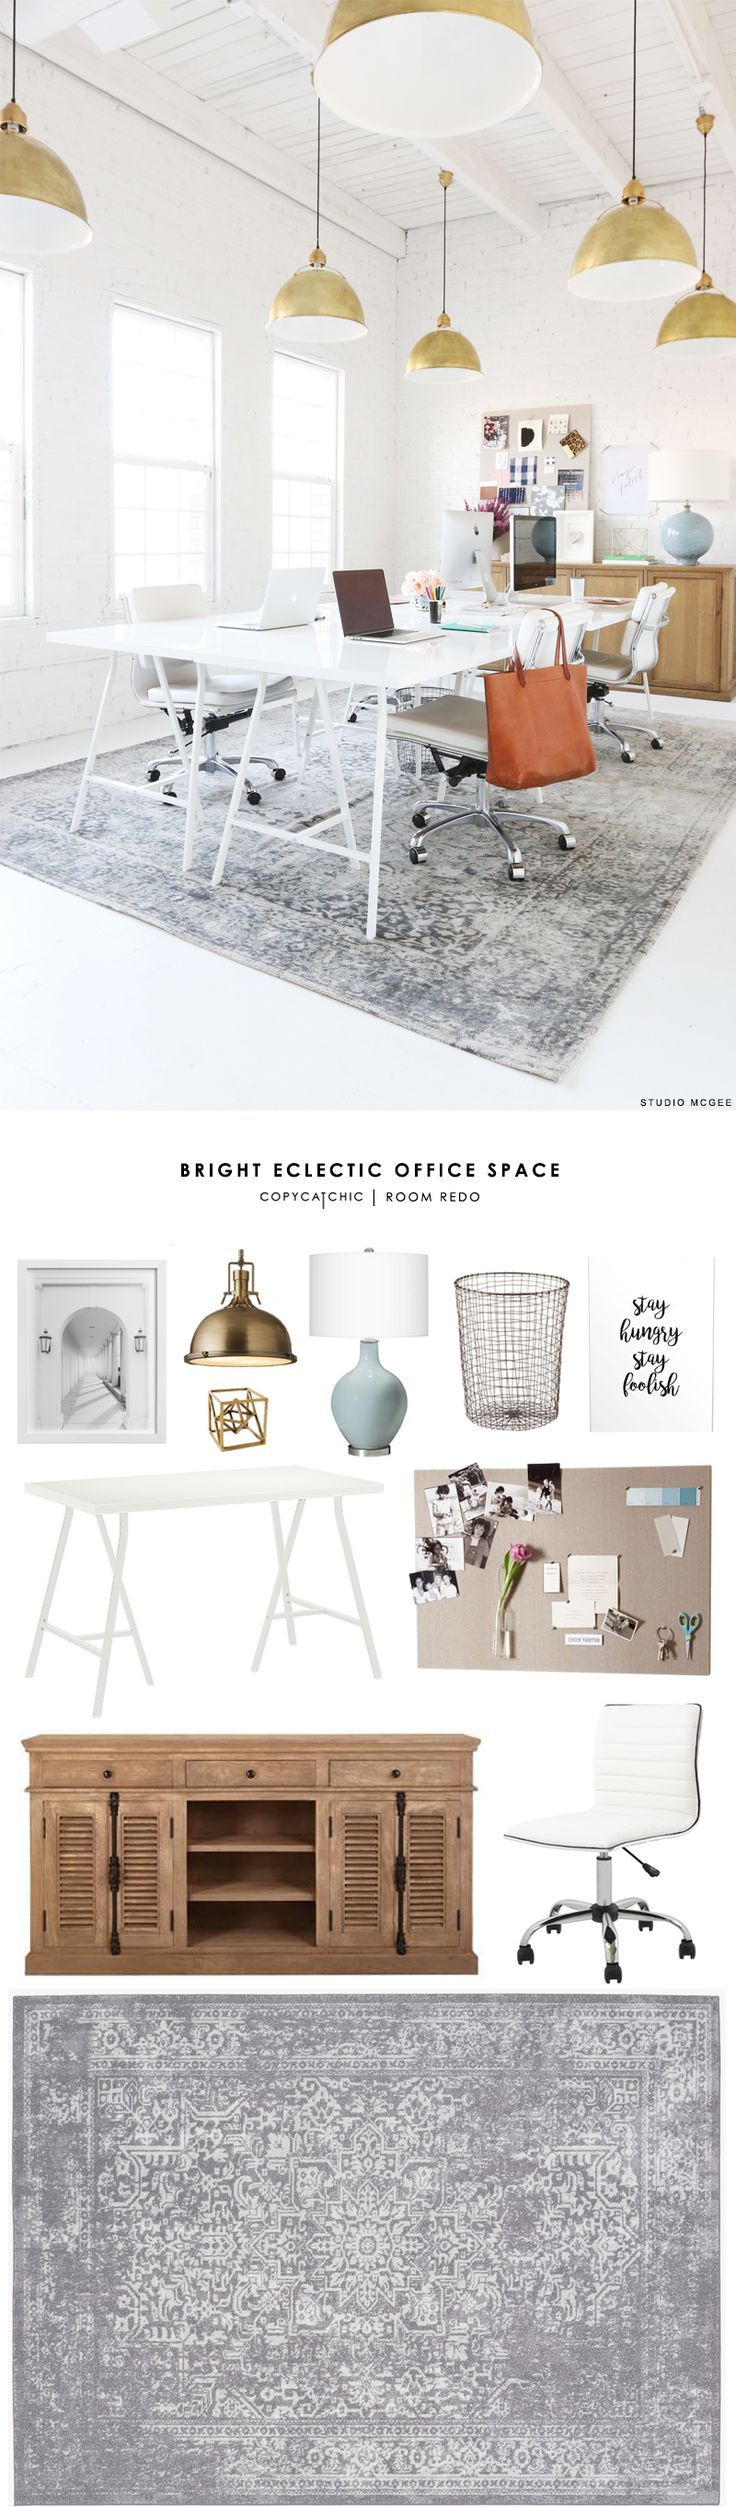 Copy Cat Chic Room Redo   Bright Eclectic Office Space